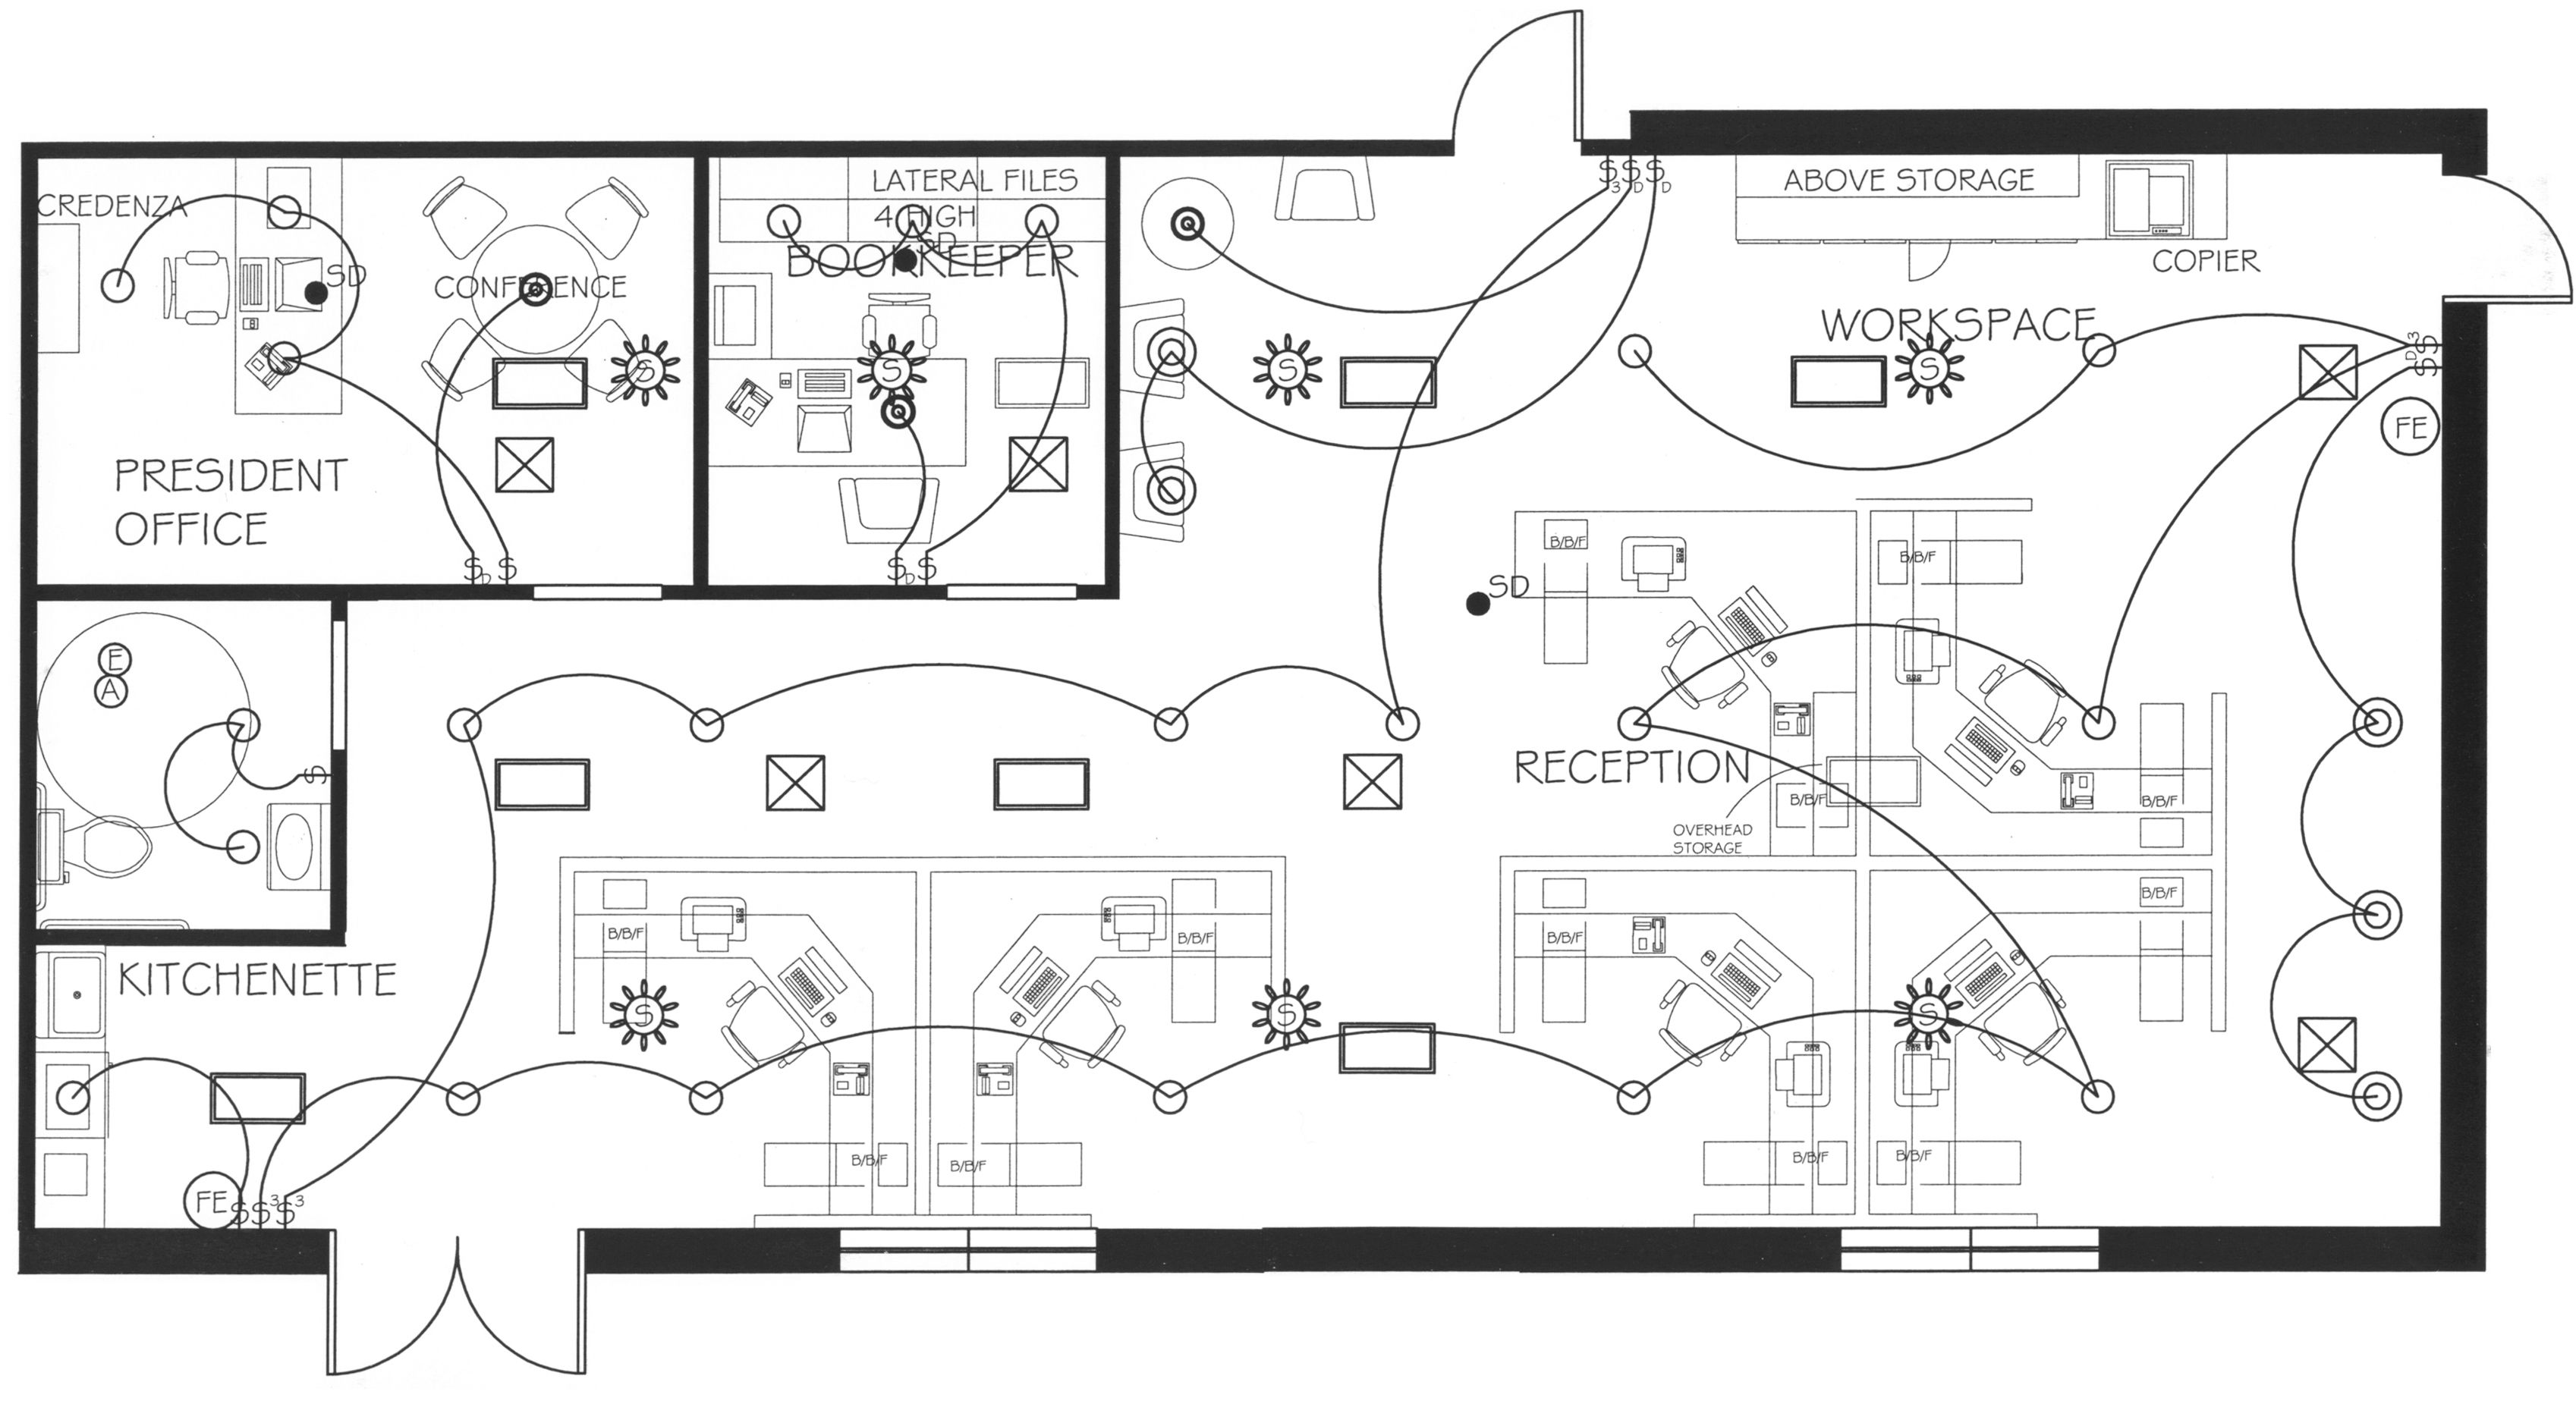 office layout floor plan lauren dugger s portfolio [ 3395 x 1847 Pixel ]